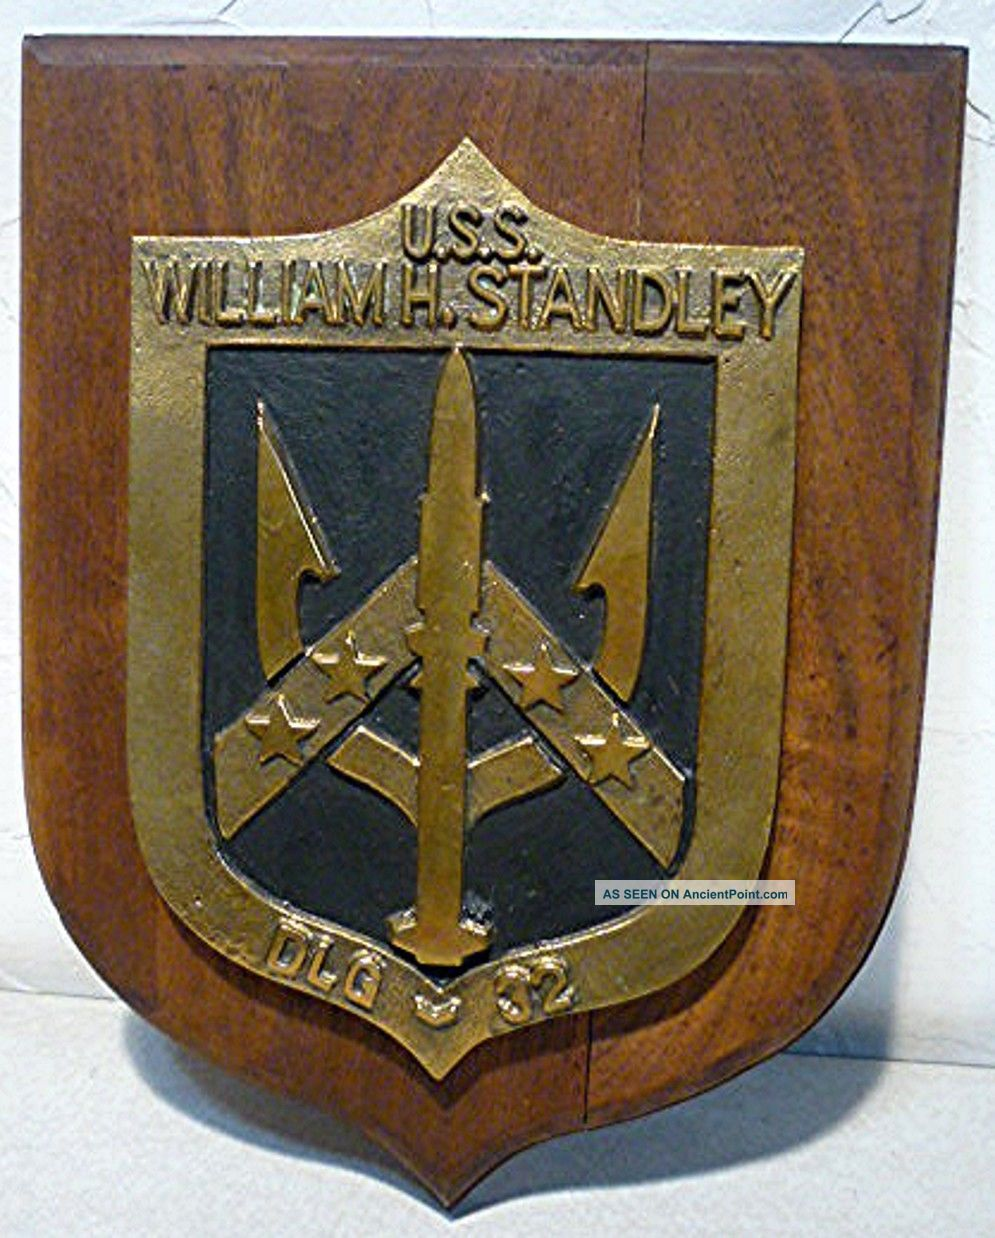 Vintage Us Navy Hand Painted Ship Plaque Uss William Standley Dlg - 32.  1966 - 1994 Plaques & Signs photo